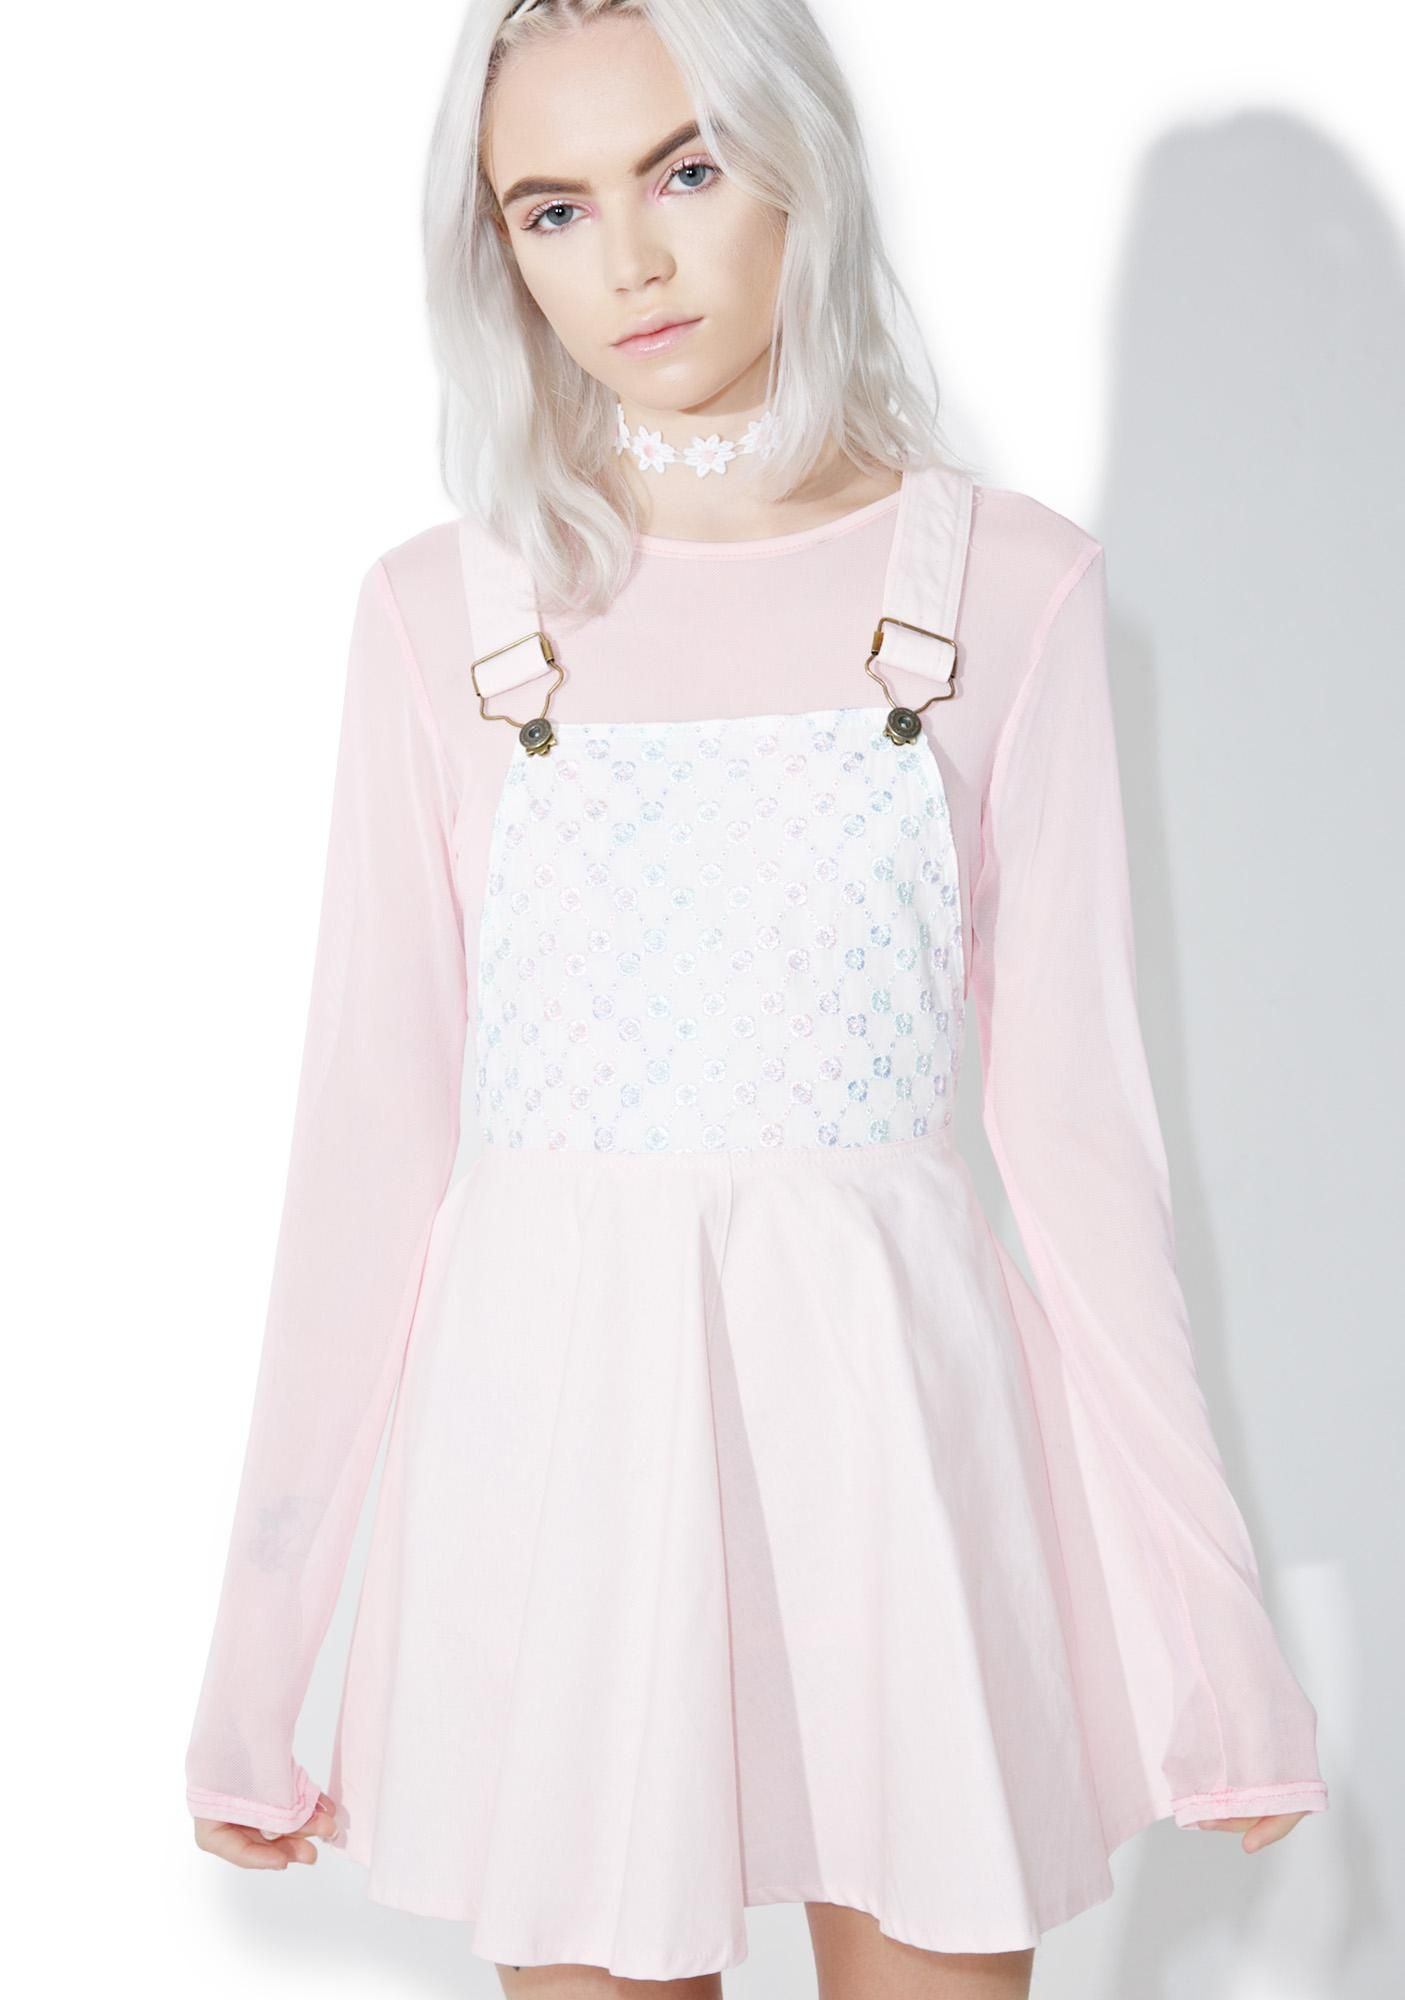 8d9e0c063c8 Pastel Petals Overall Dress are a world of color